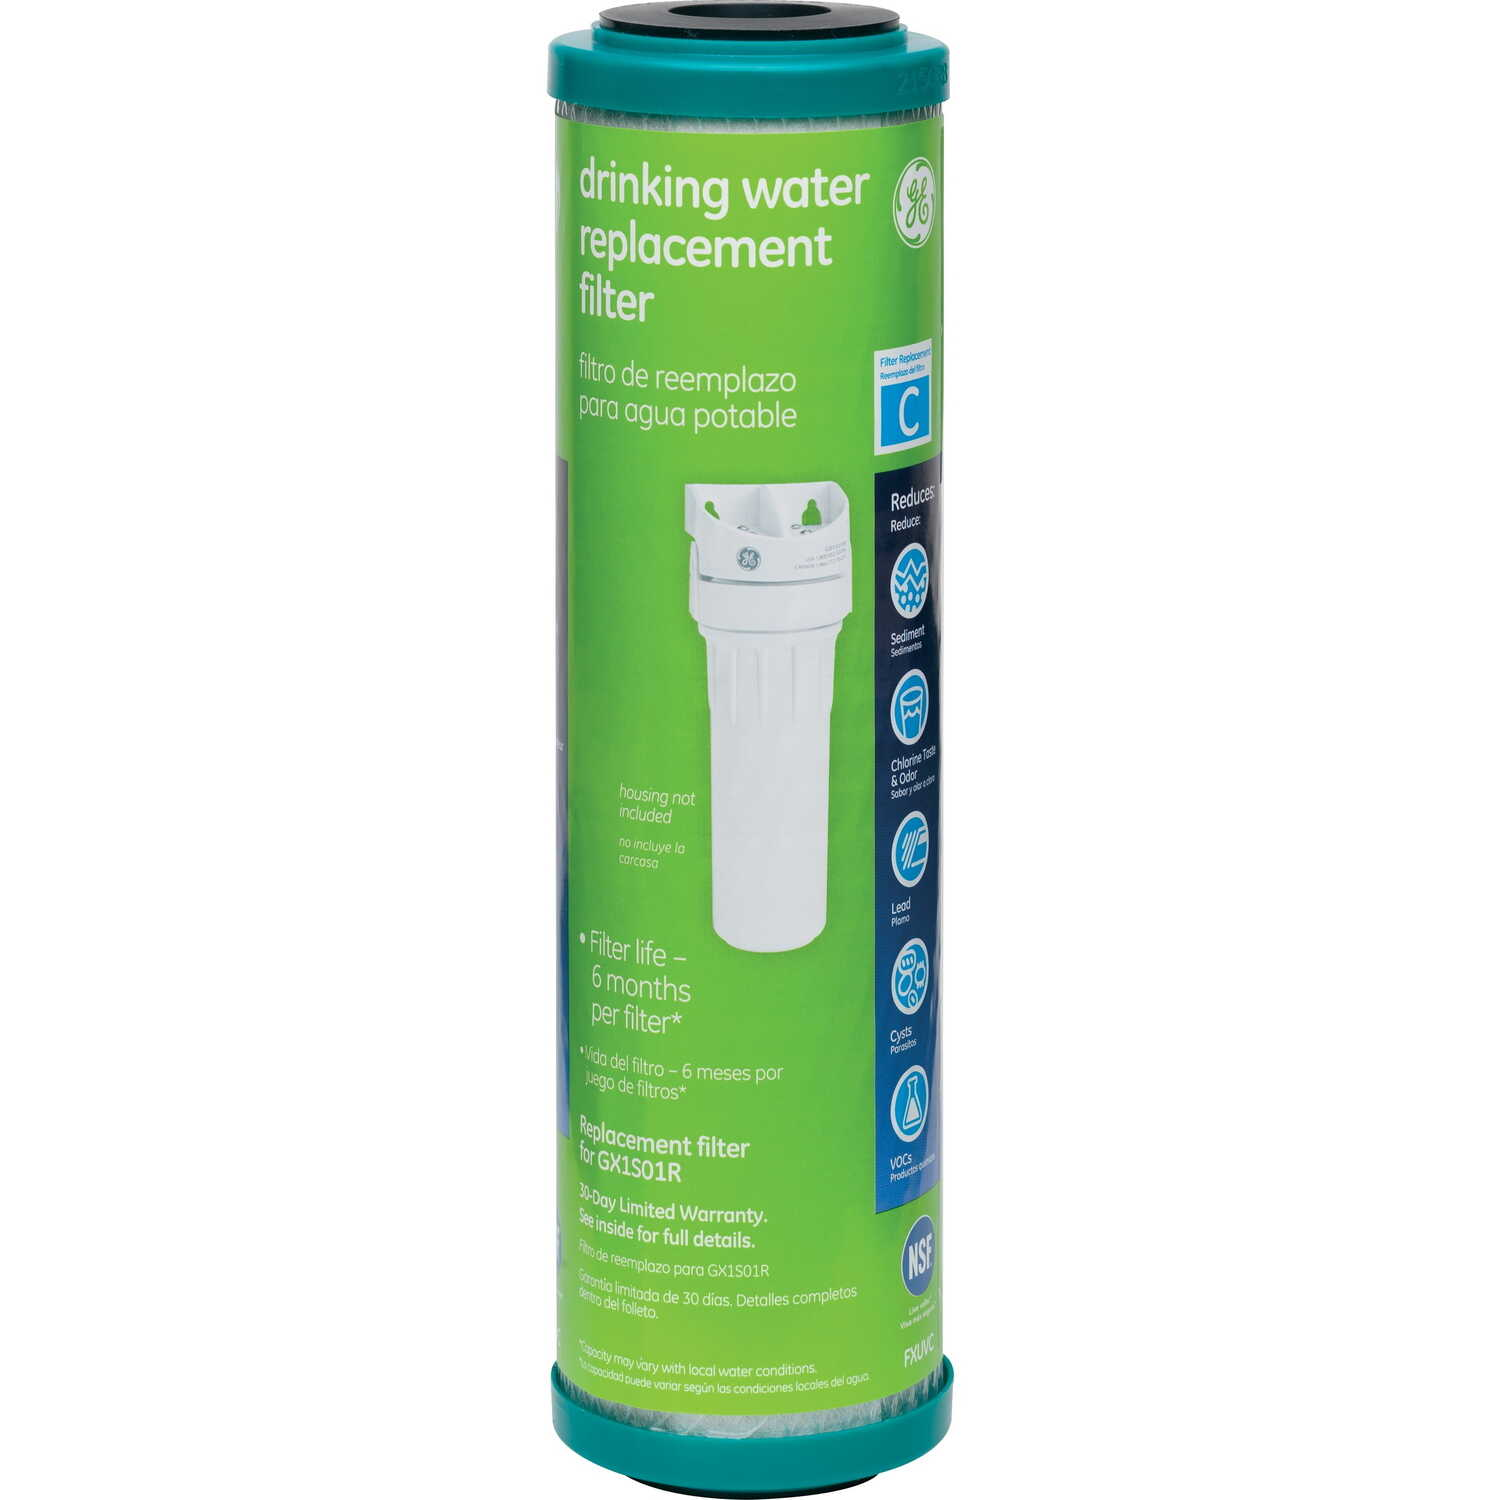 GE Appliances  Drinking Water  Replacement Water Filter  For Under Sink 600 gal.